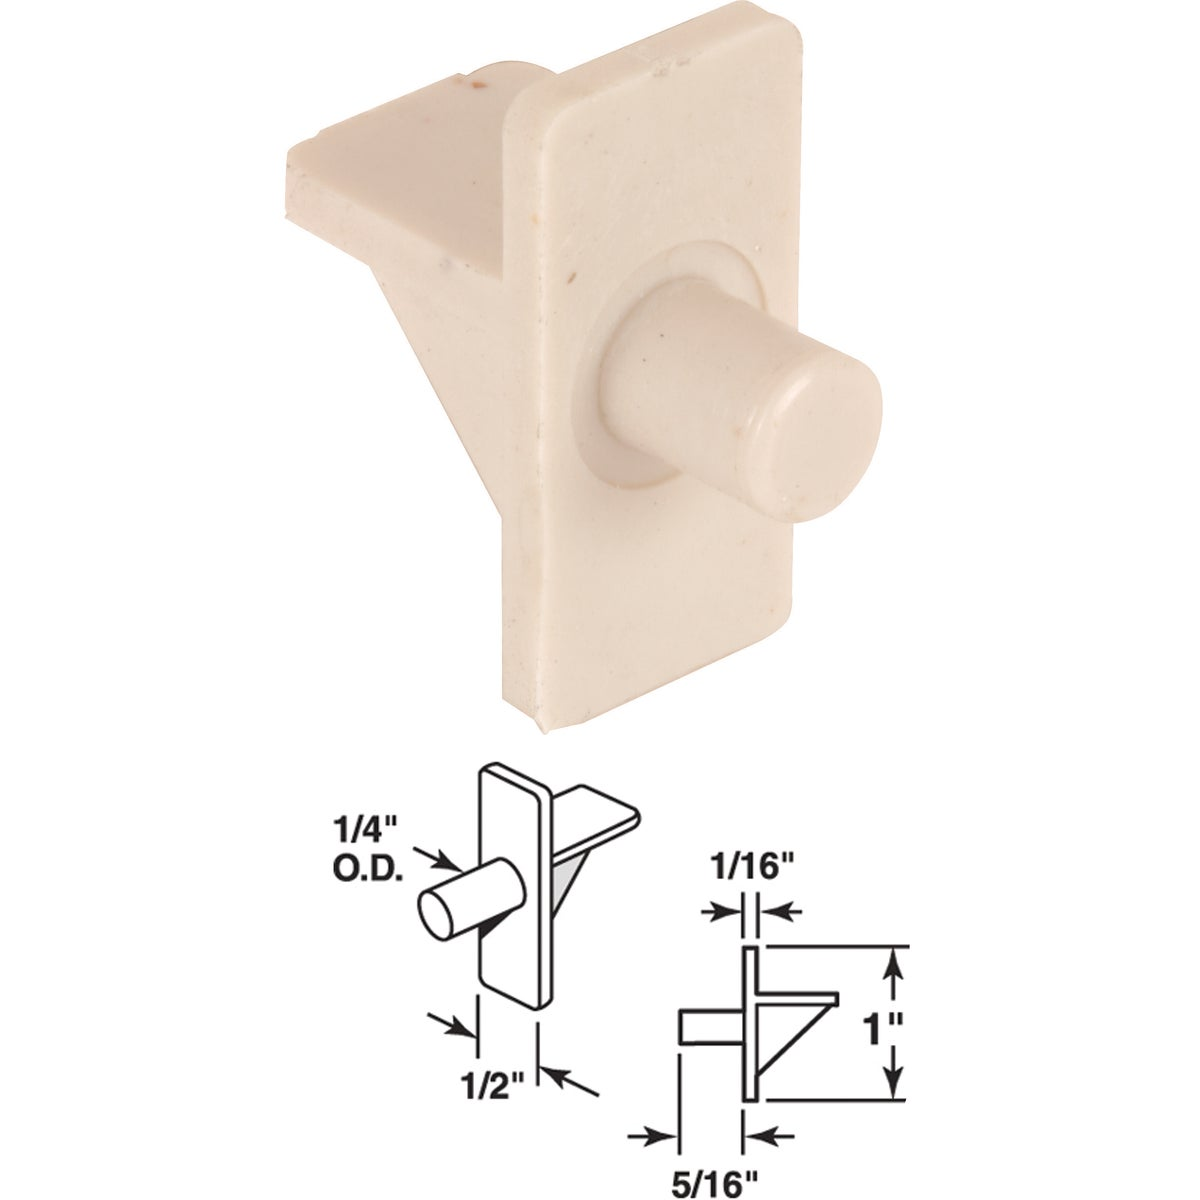 BEIGE SHELF SUPPORT - 242157 by Prime Line Products